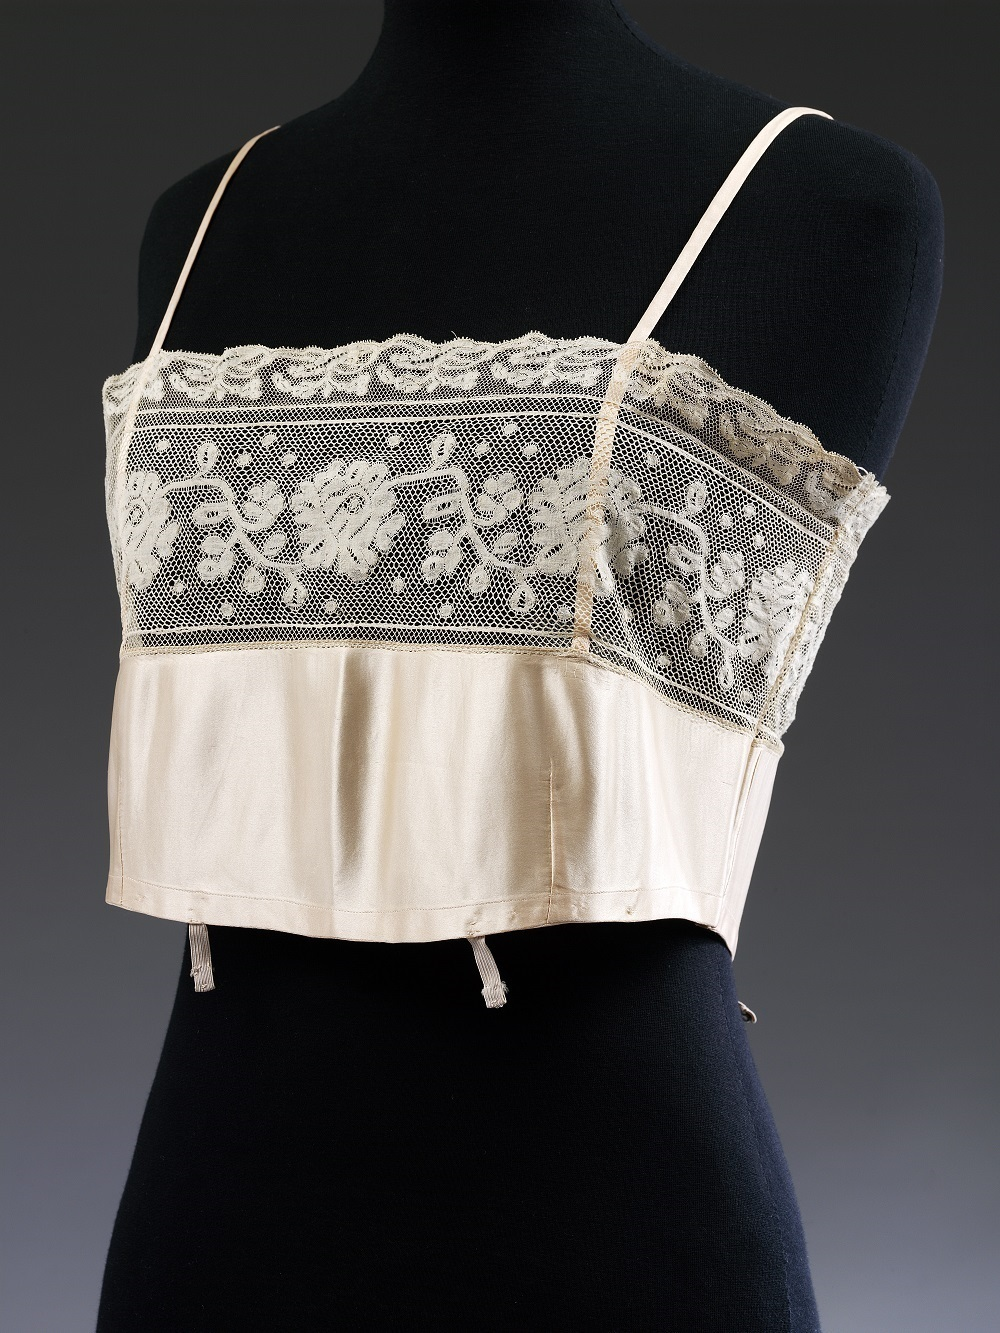 T.368-1976 Brassiere Brassiere, satin, ca. 1929, English England Ca. 1929 Satin and machine made ecru